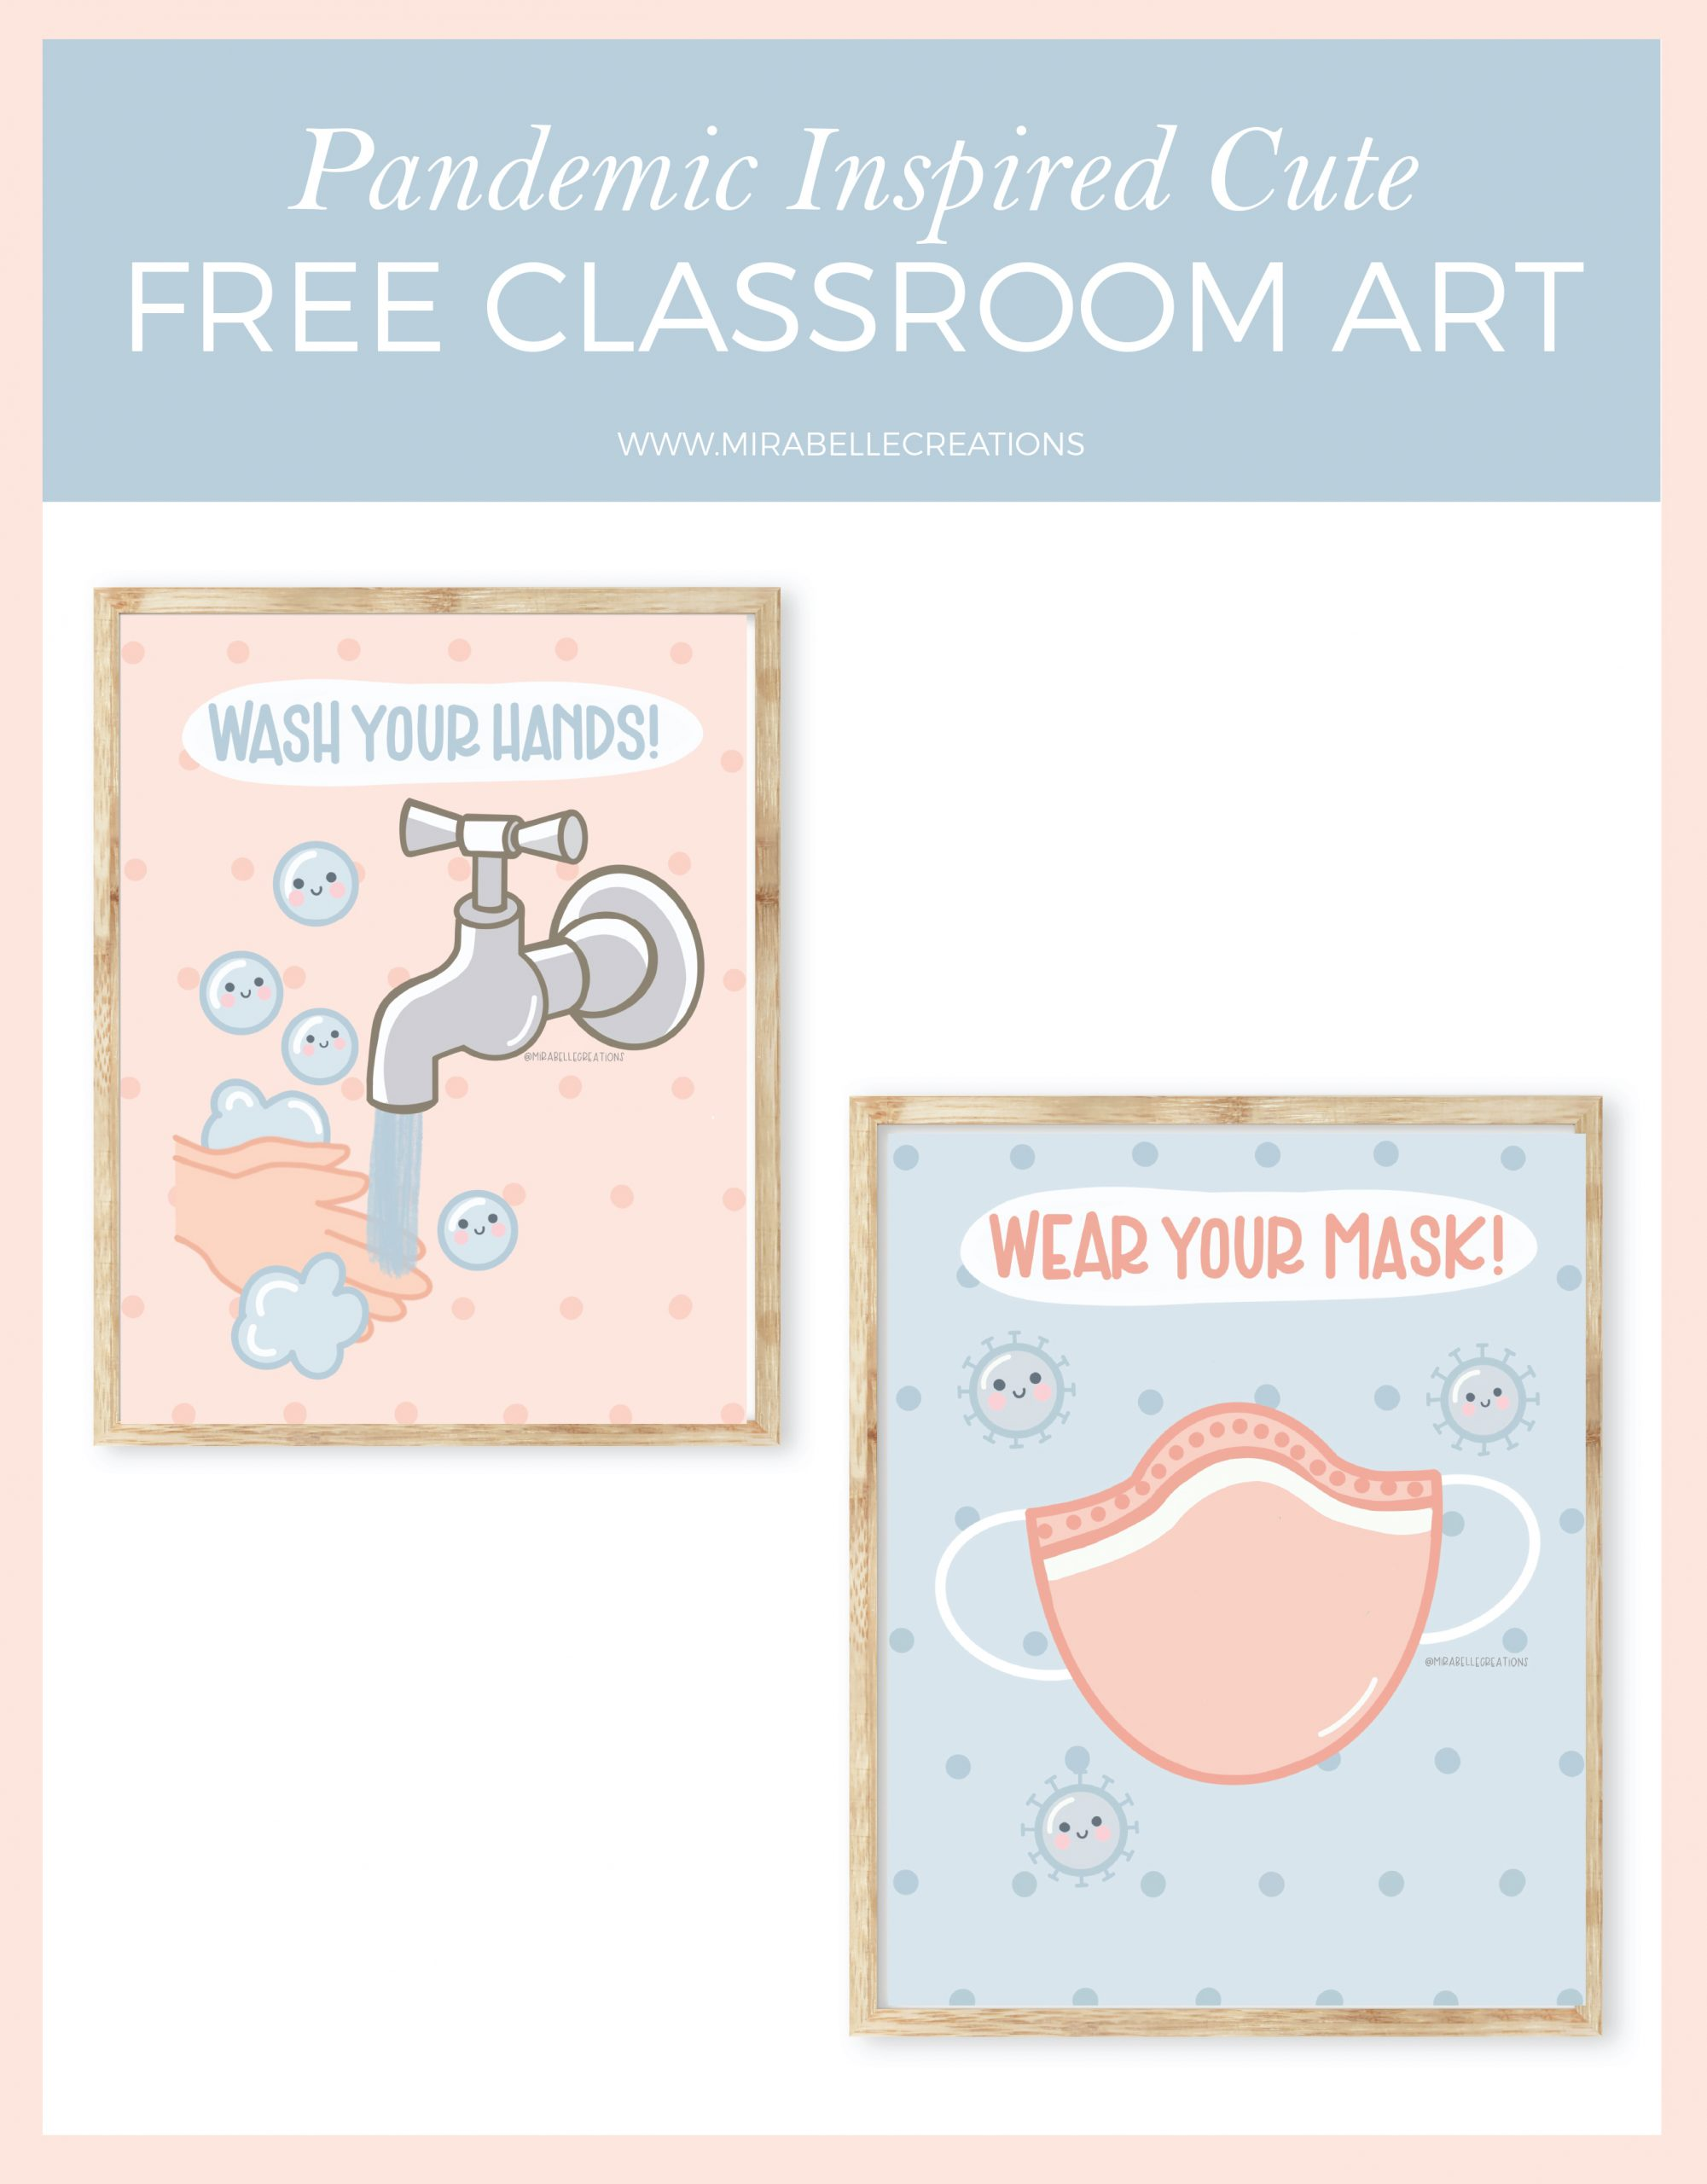 Free Pandemic Inspired Cute Classroom Art by Mirabelle Creations